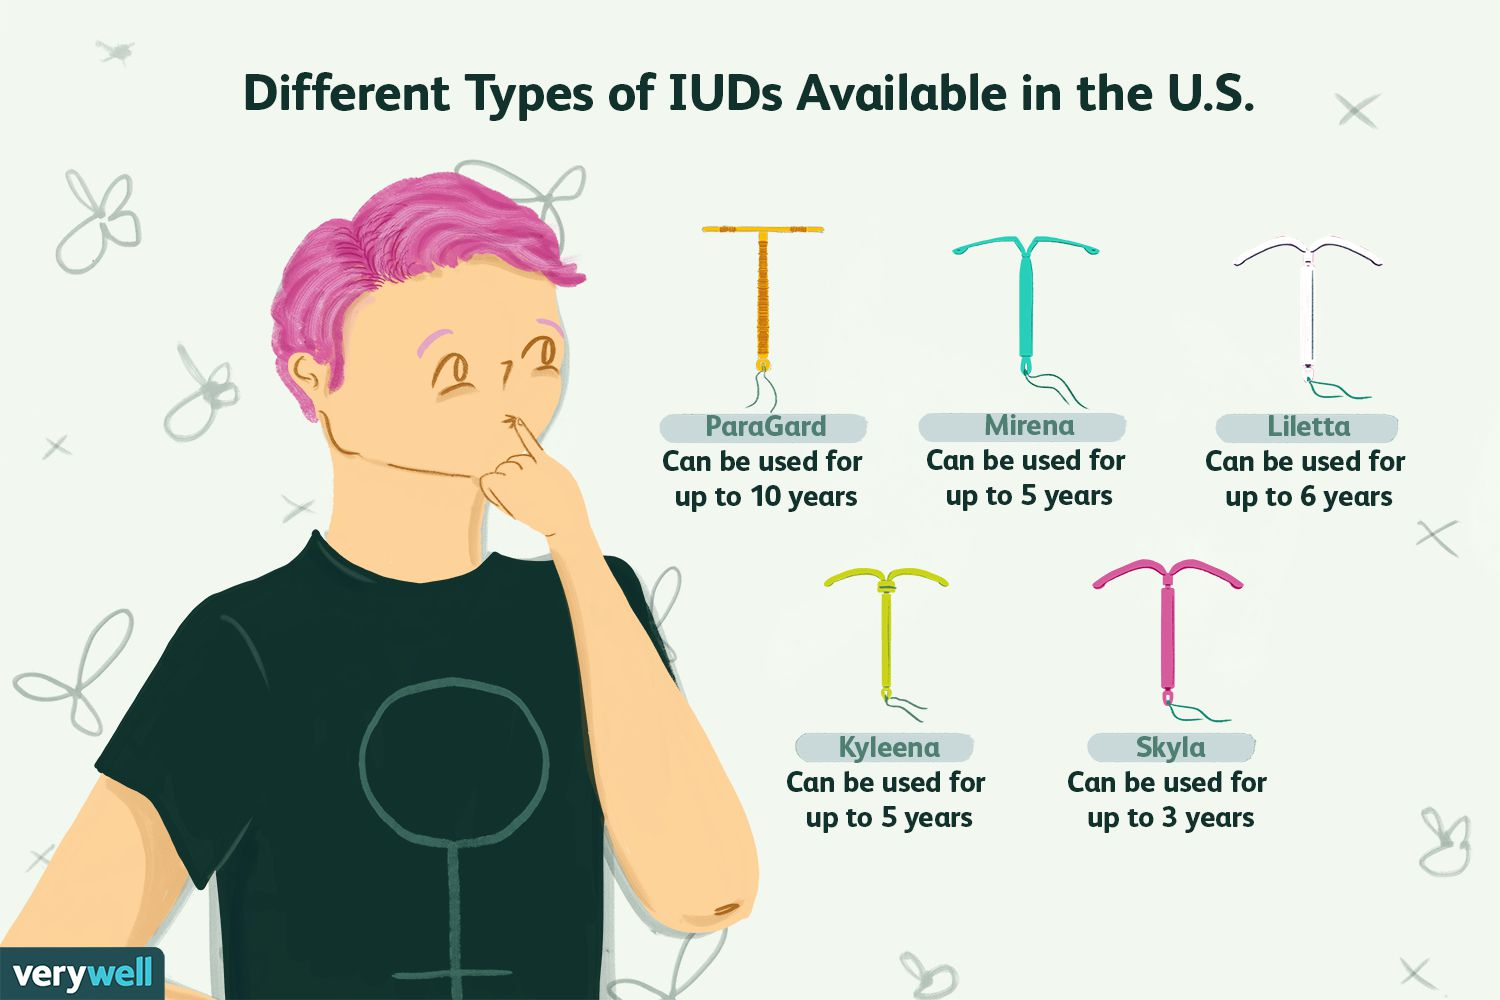 Different Types of IUDs Available in the U.S.